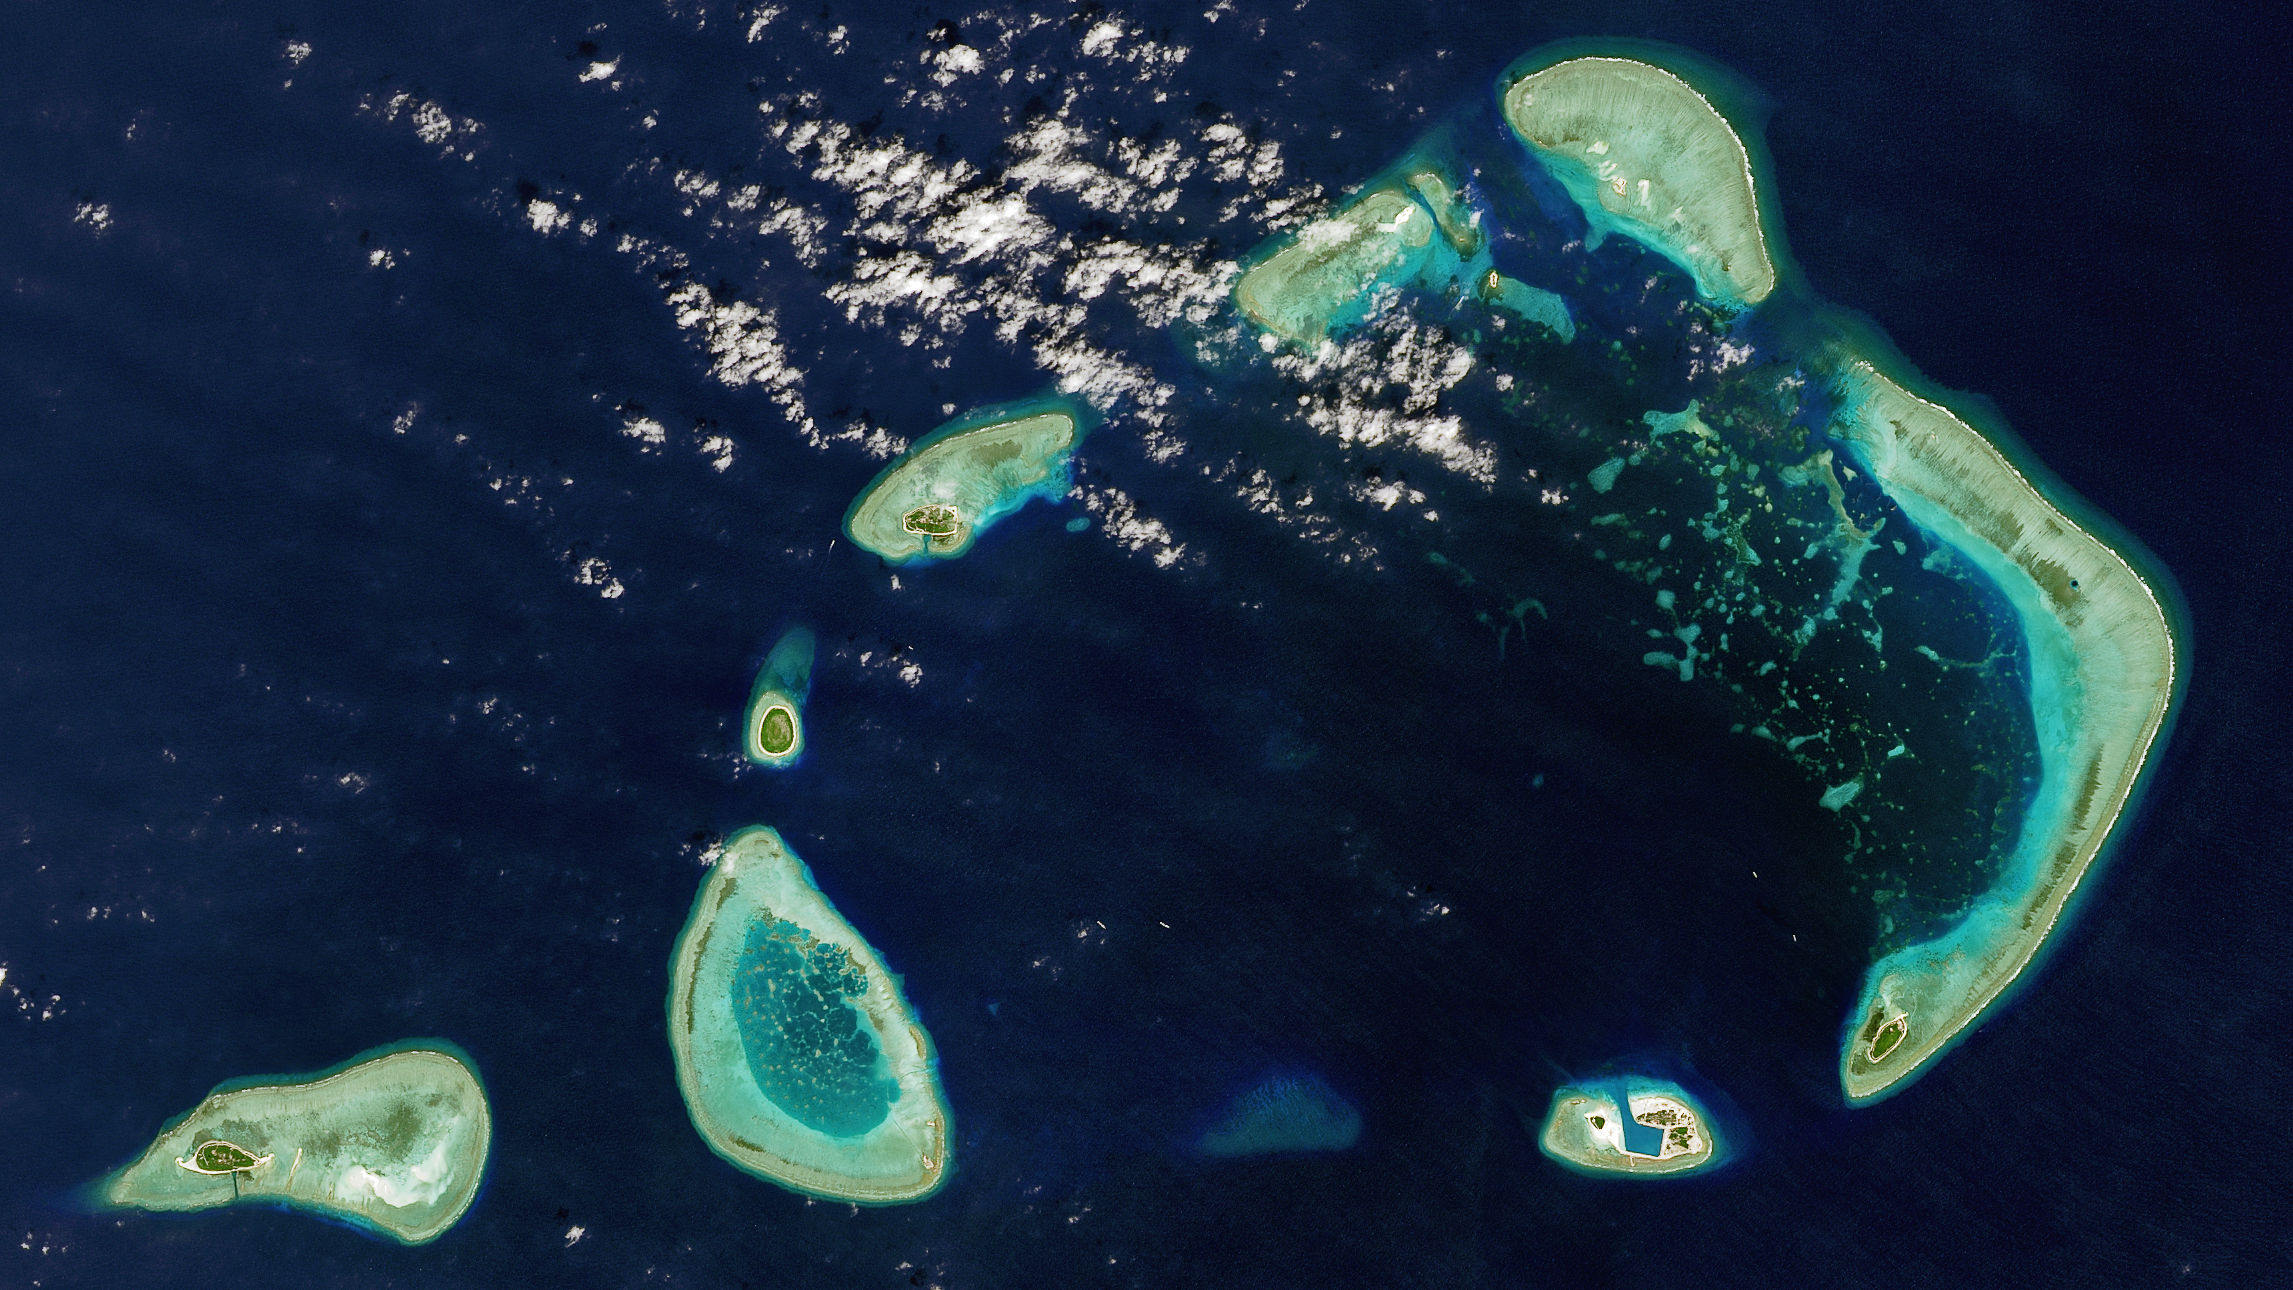 A satellite view of the Crescent Group of islands which is part of the disputed Paracel Islands located in the South China Sea on Jan. 22, 2016.